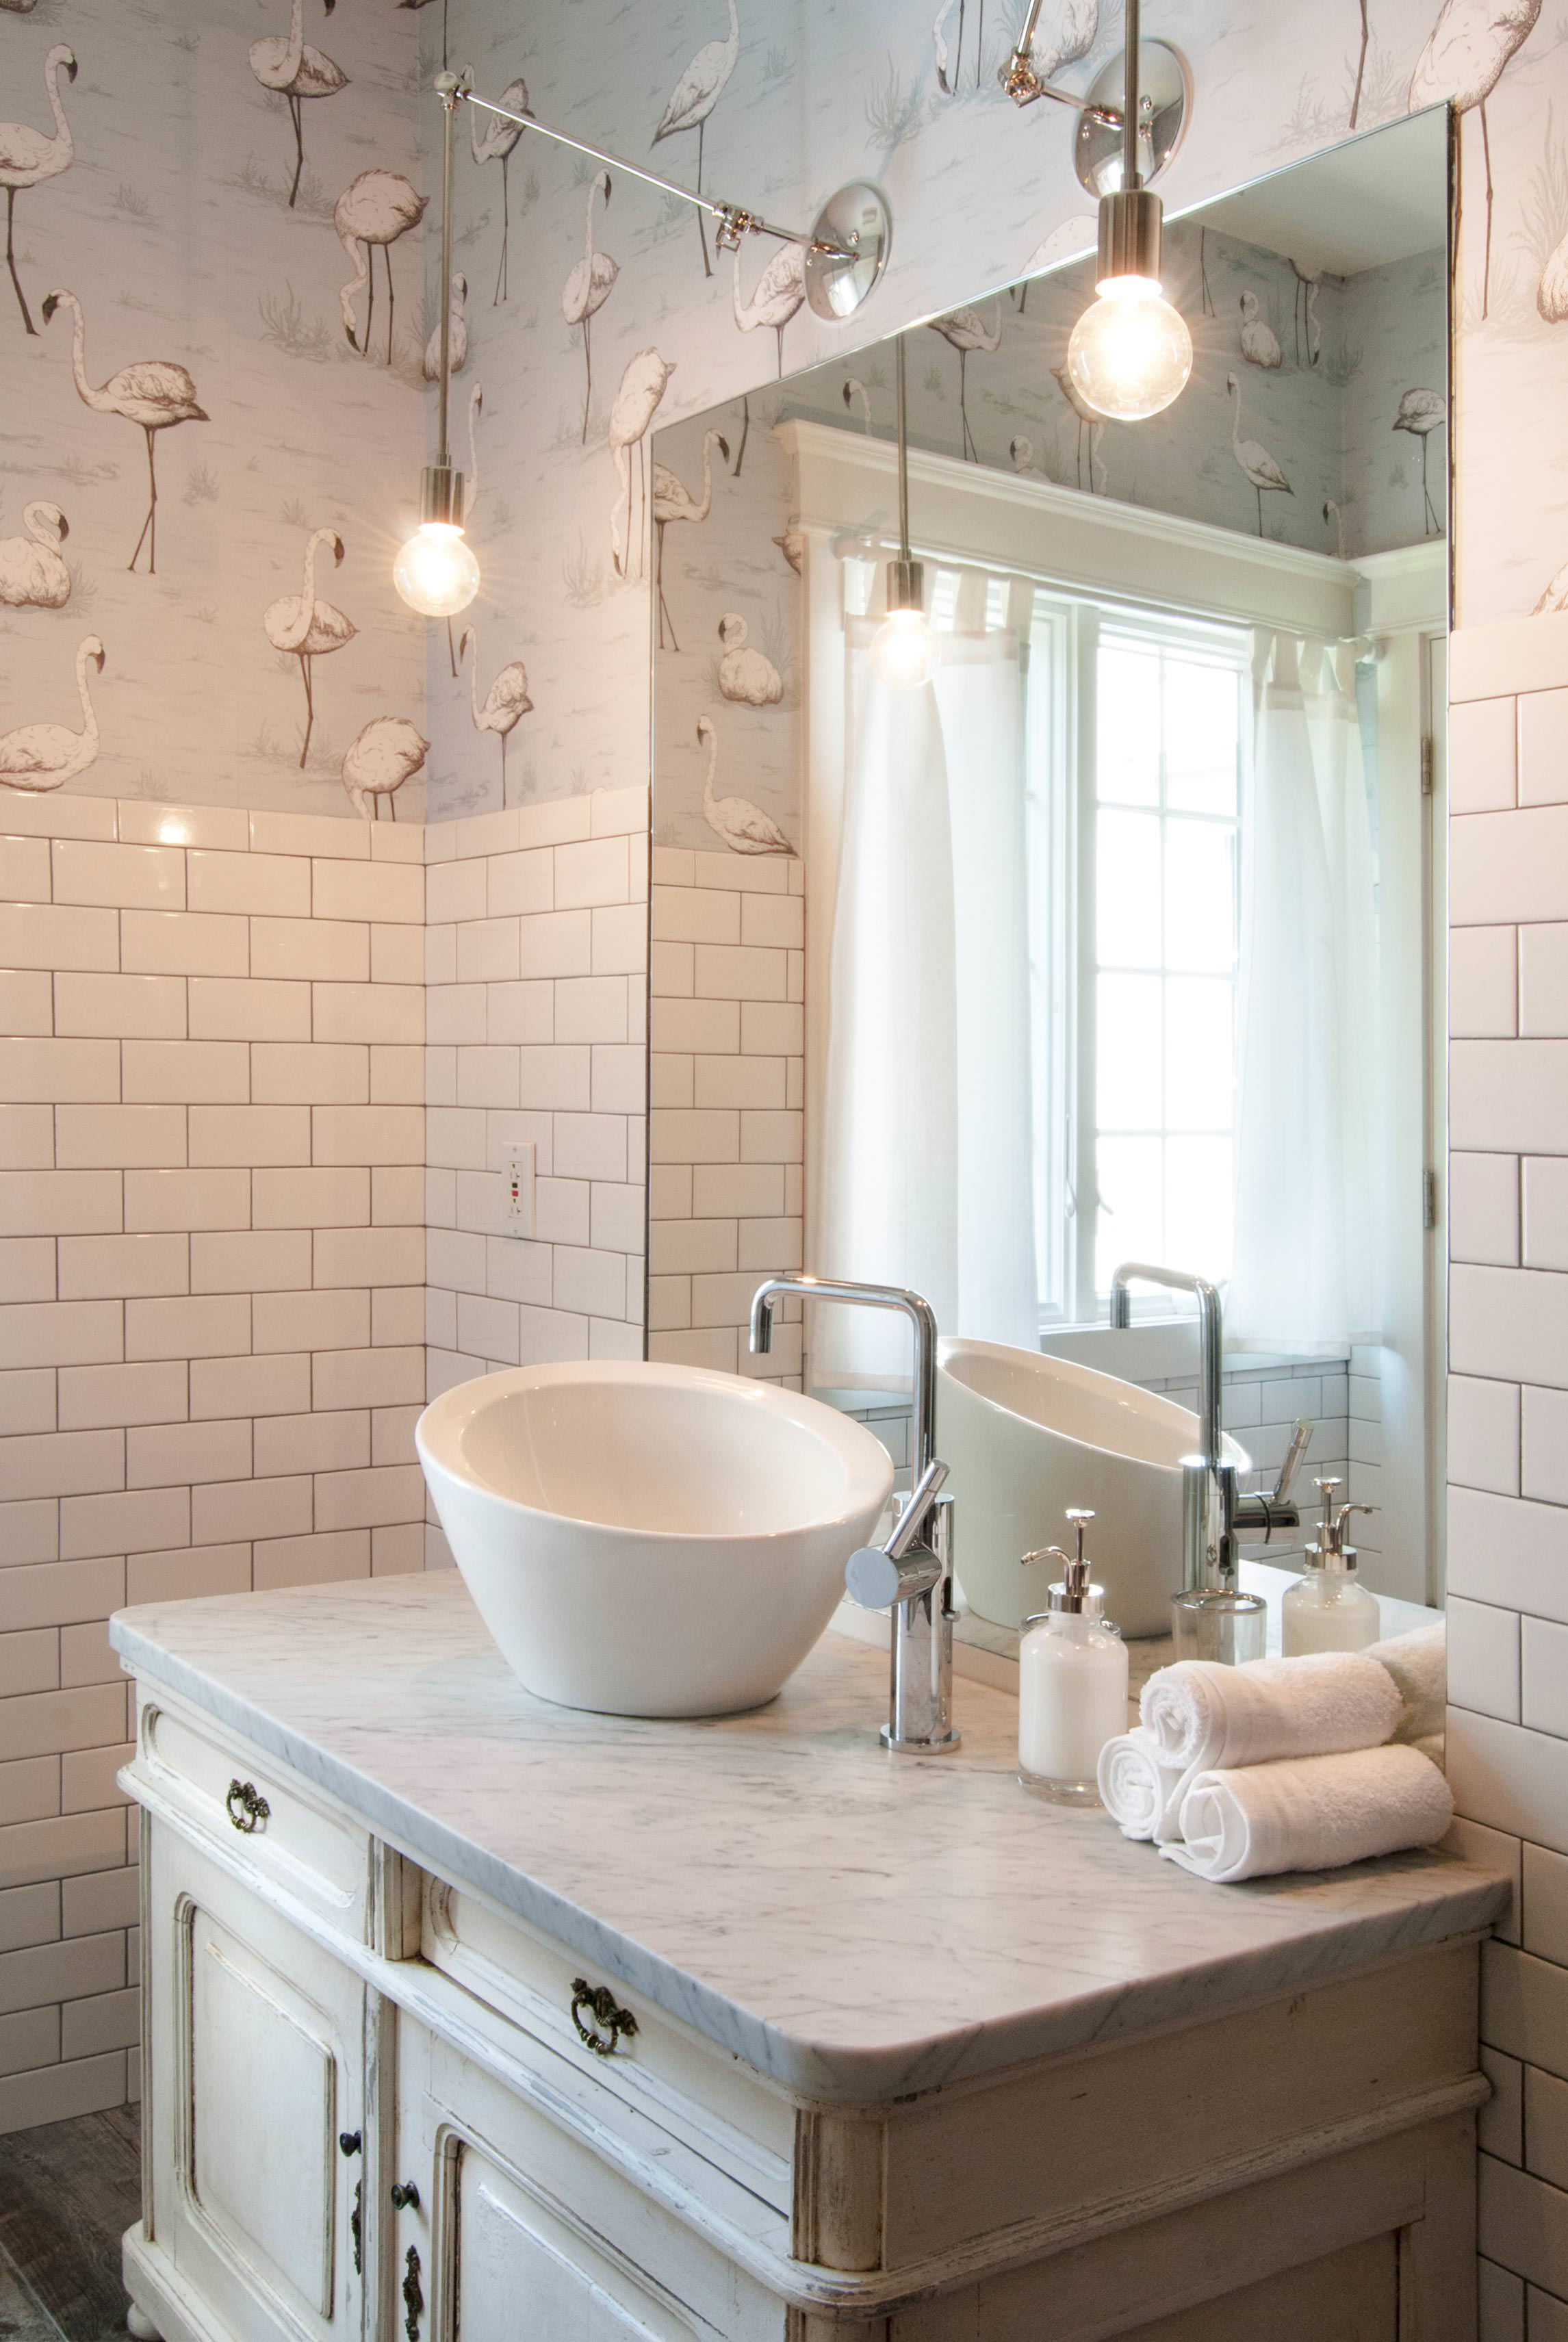 25 Eclectic Bathroom Ideas And Designs Design Trends